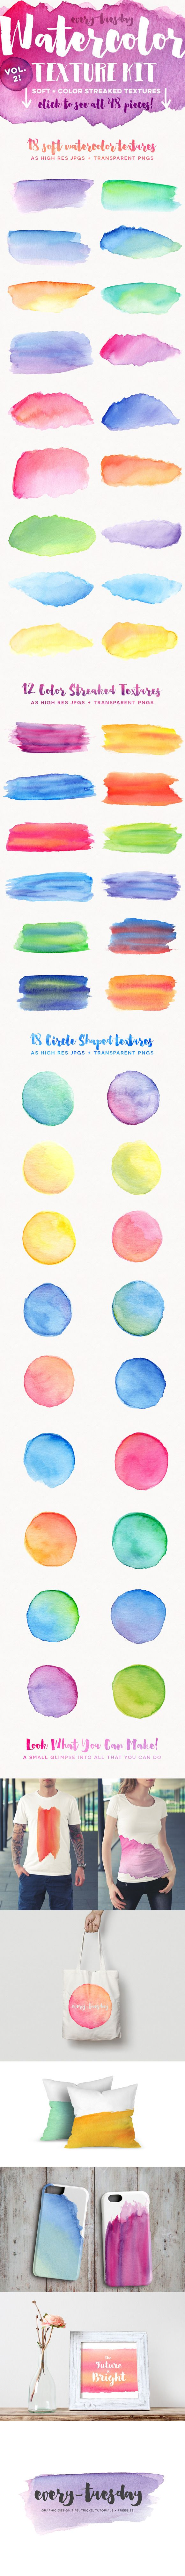 Watercolor Texture Kit Vol. 2 is up! Soft + Color Streaked textures: http://every-tuesday.com/watercolor-2